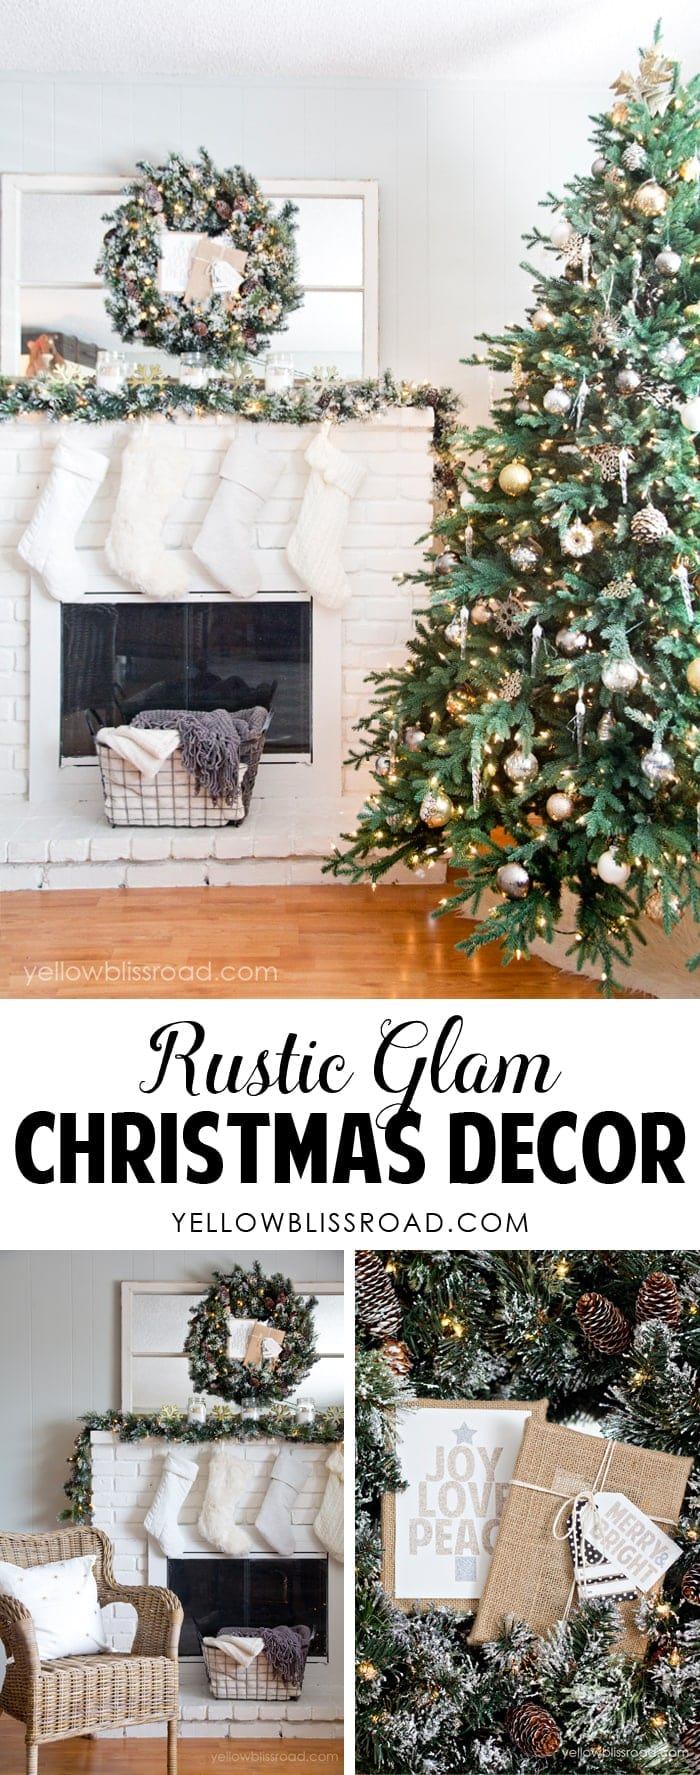 Rustic Glam Christmas Decor 2